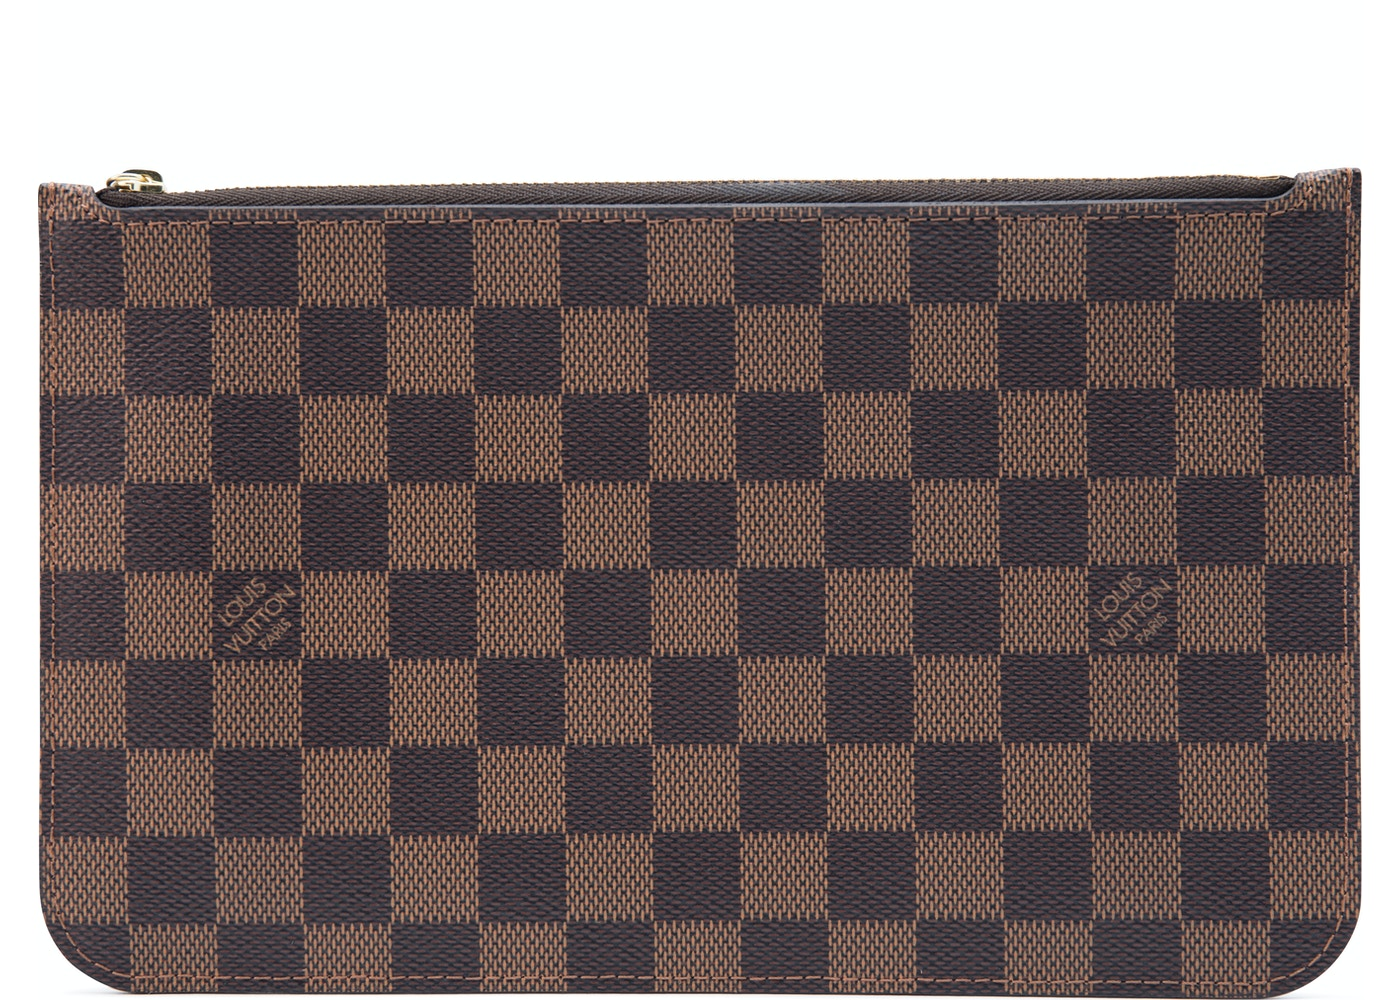 d761ad075f9 Louis Vuitton Neverfull Pochette Damier Ebene (Without Strap) Brown